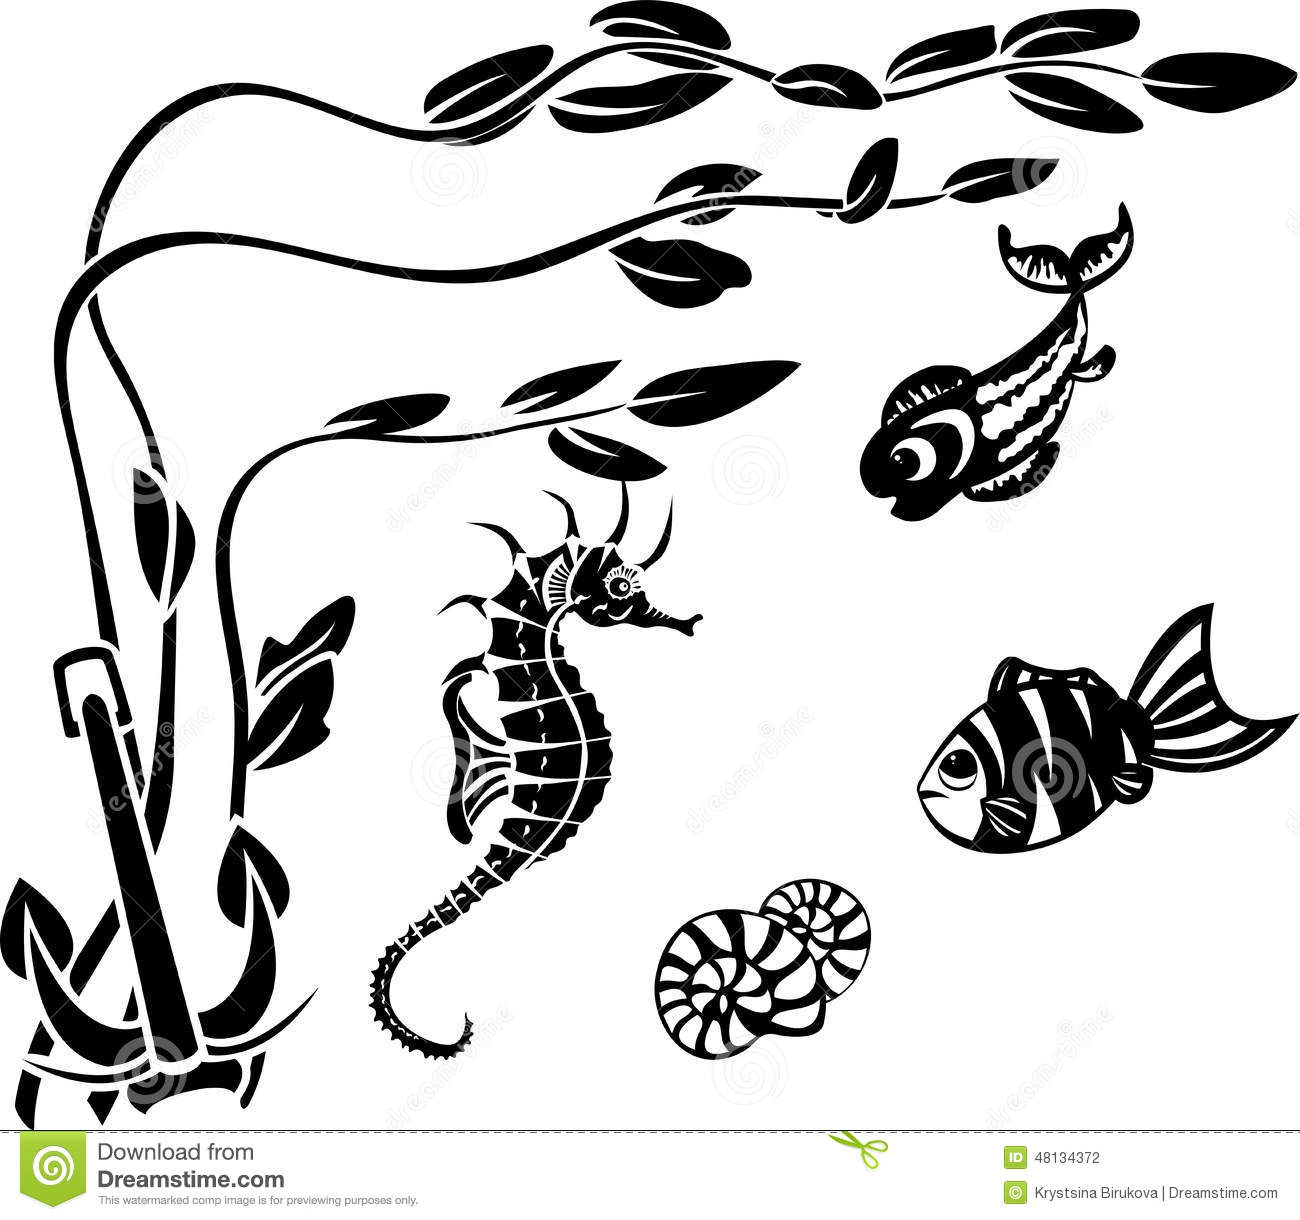 Peacock Coloring Pages also Seahorse Outline Clip Art 13773555 as well Stock Illustration Underwater World Stencils Algae Fish Seahorseunderwater Stencil Water Plant Fish Seahorse Image48134372 besides Royalty Free Stock Photos Petroglyph Symbol Vector Silhouettes Image35496538 furthermore Coloring Pages To Print Christmas. on horse silhouette patterns